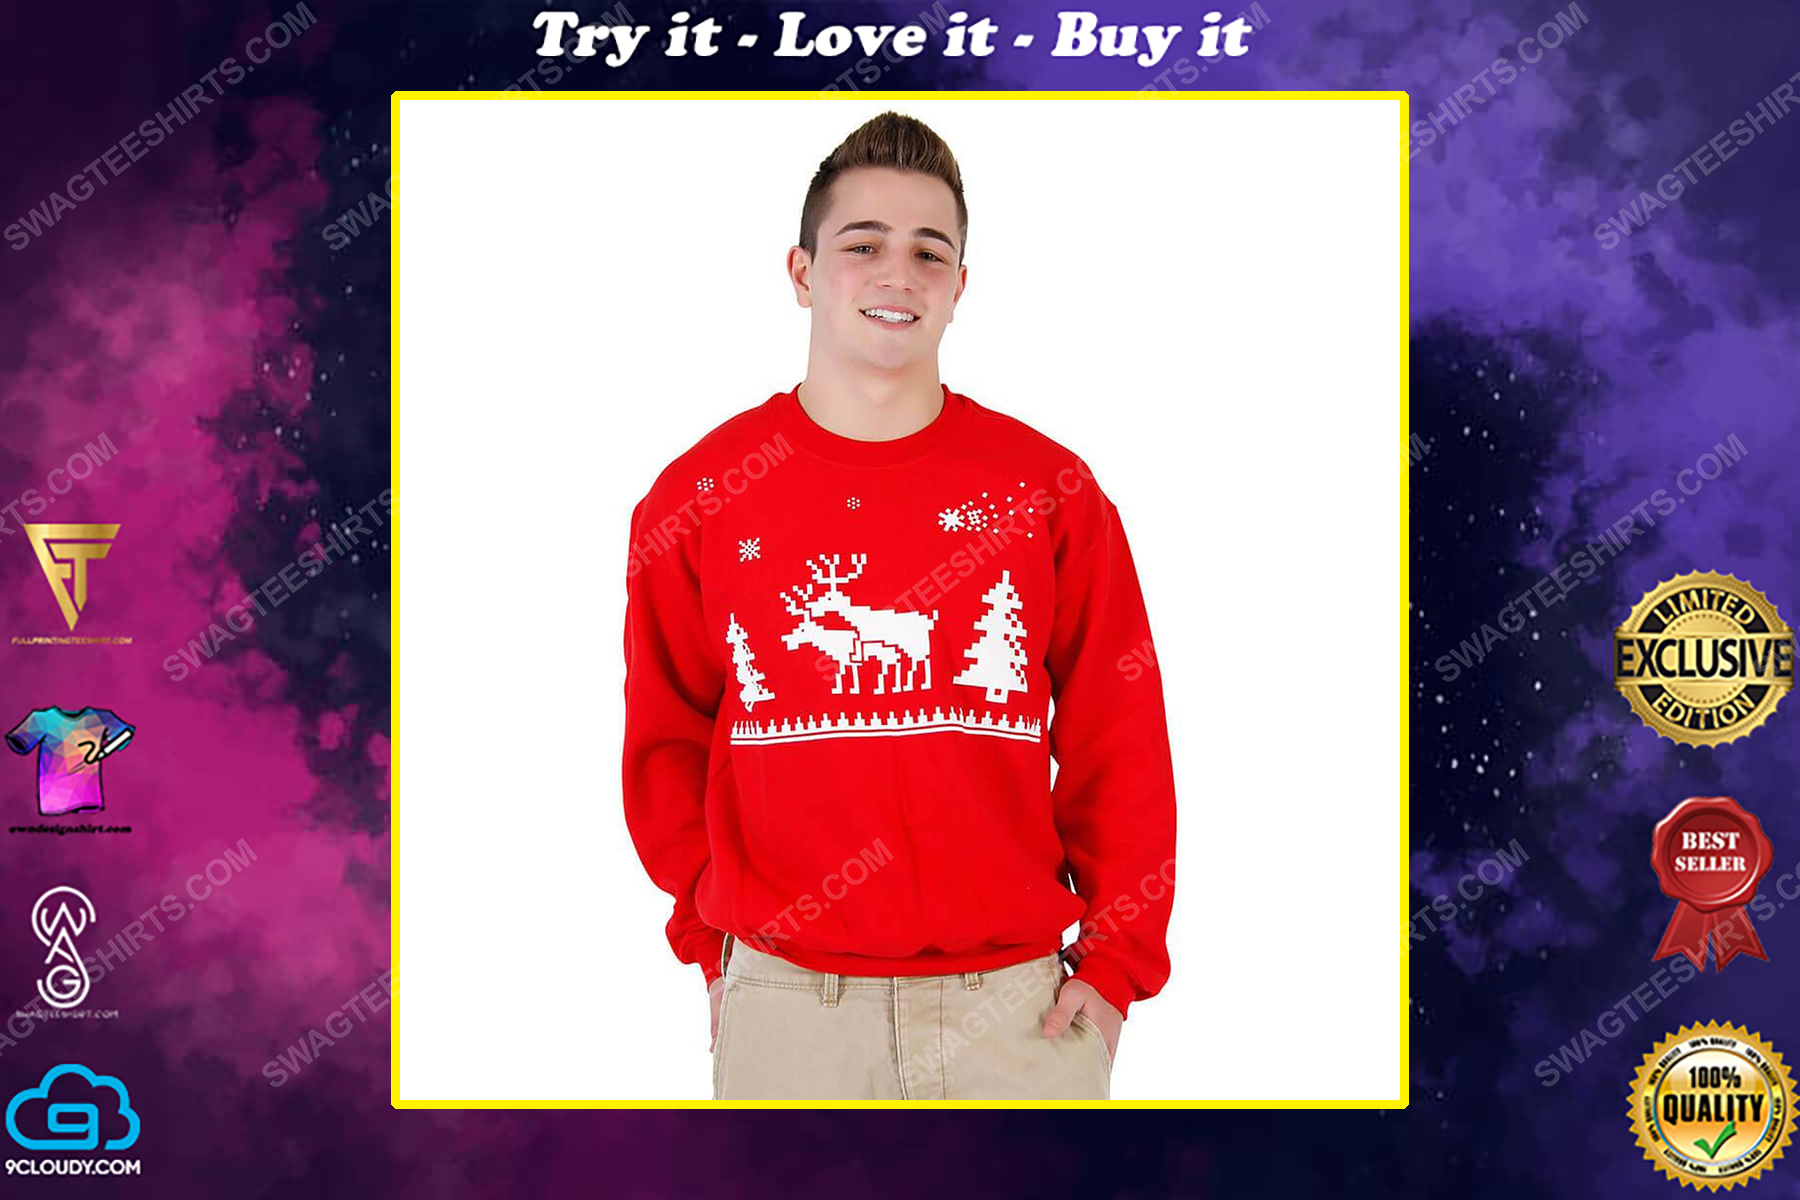 Humping reindeer full print ugly christmas sweater